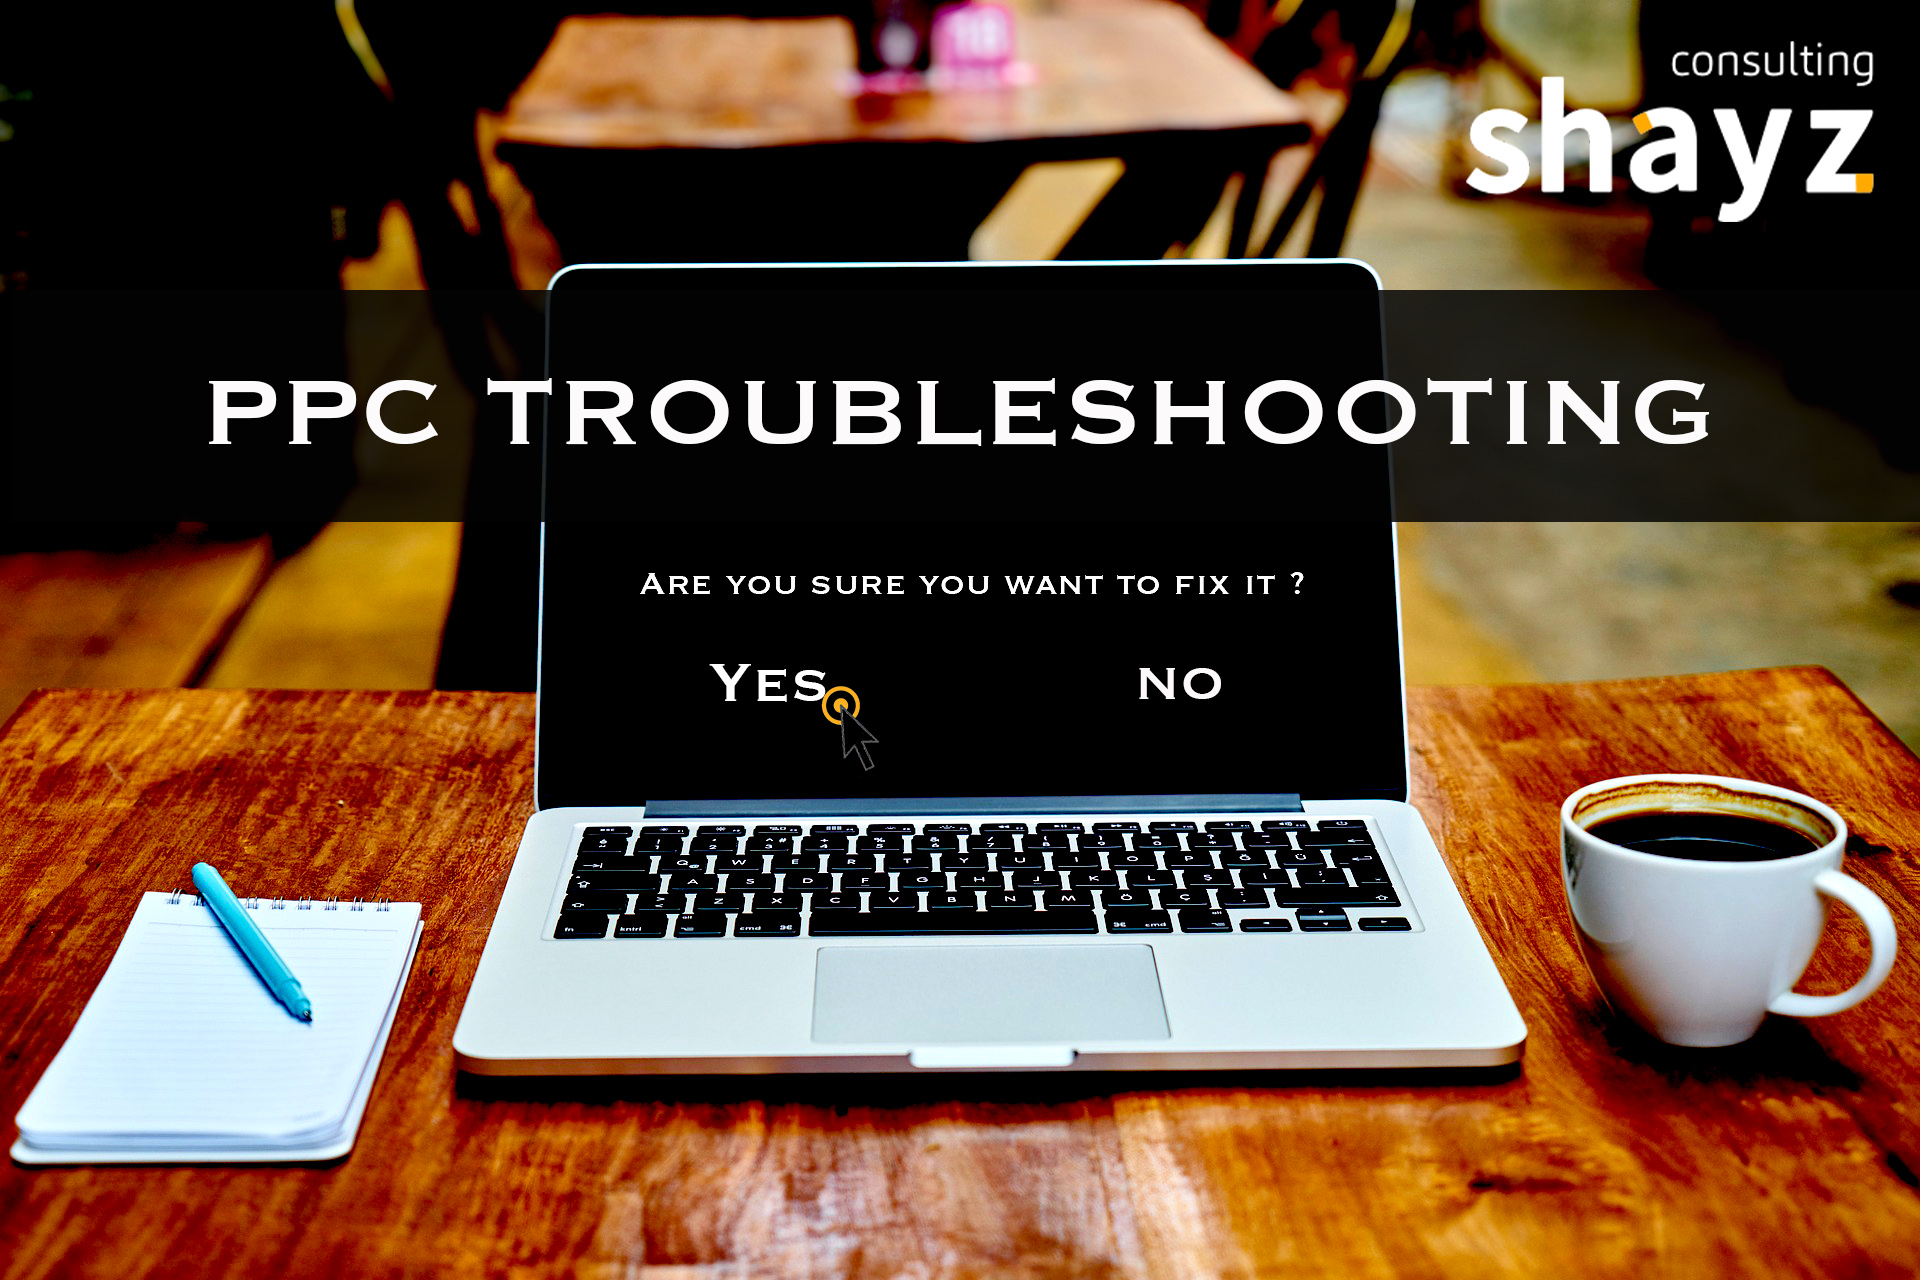 PPC troubleshooting